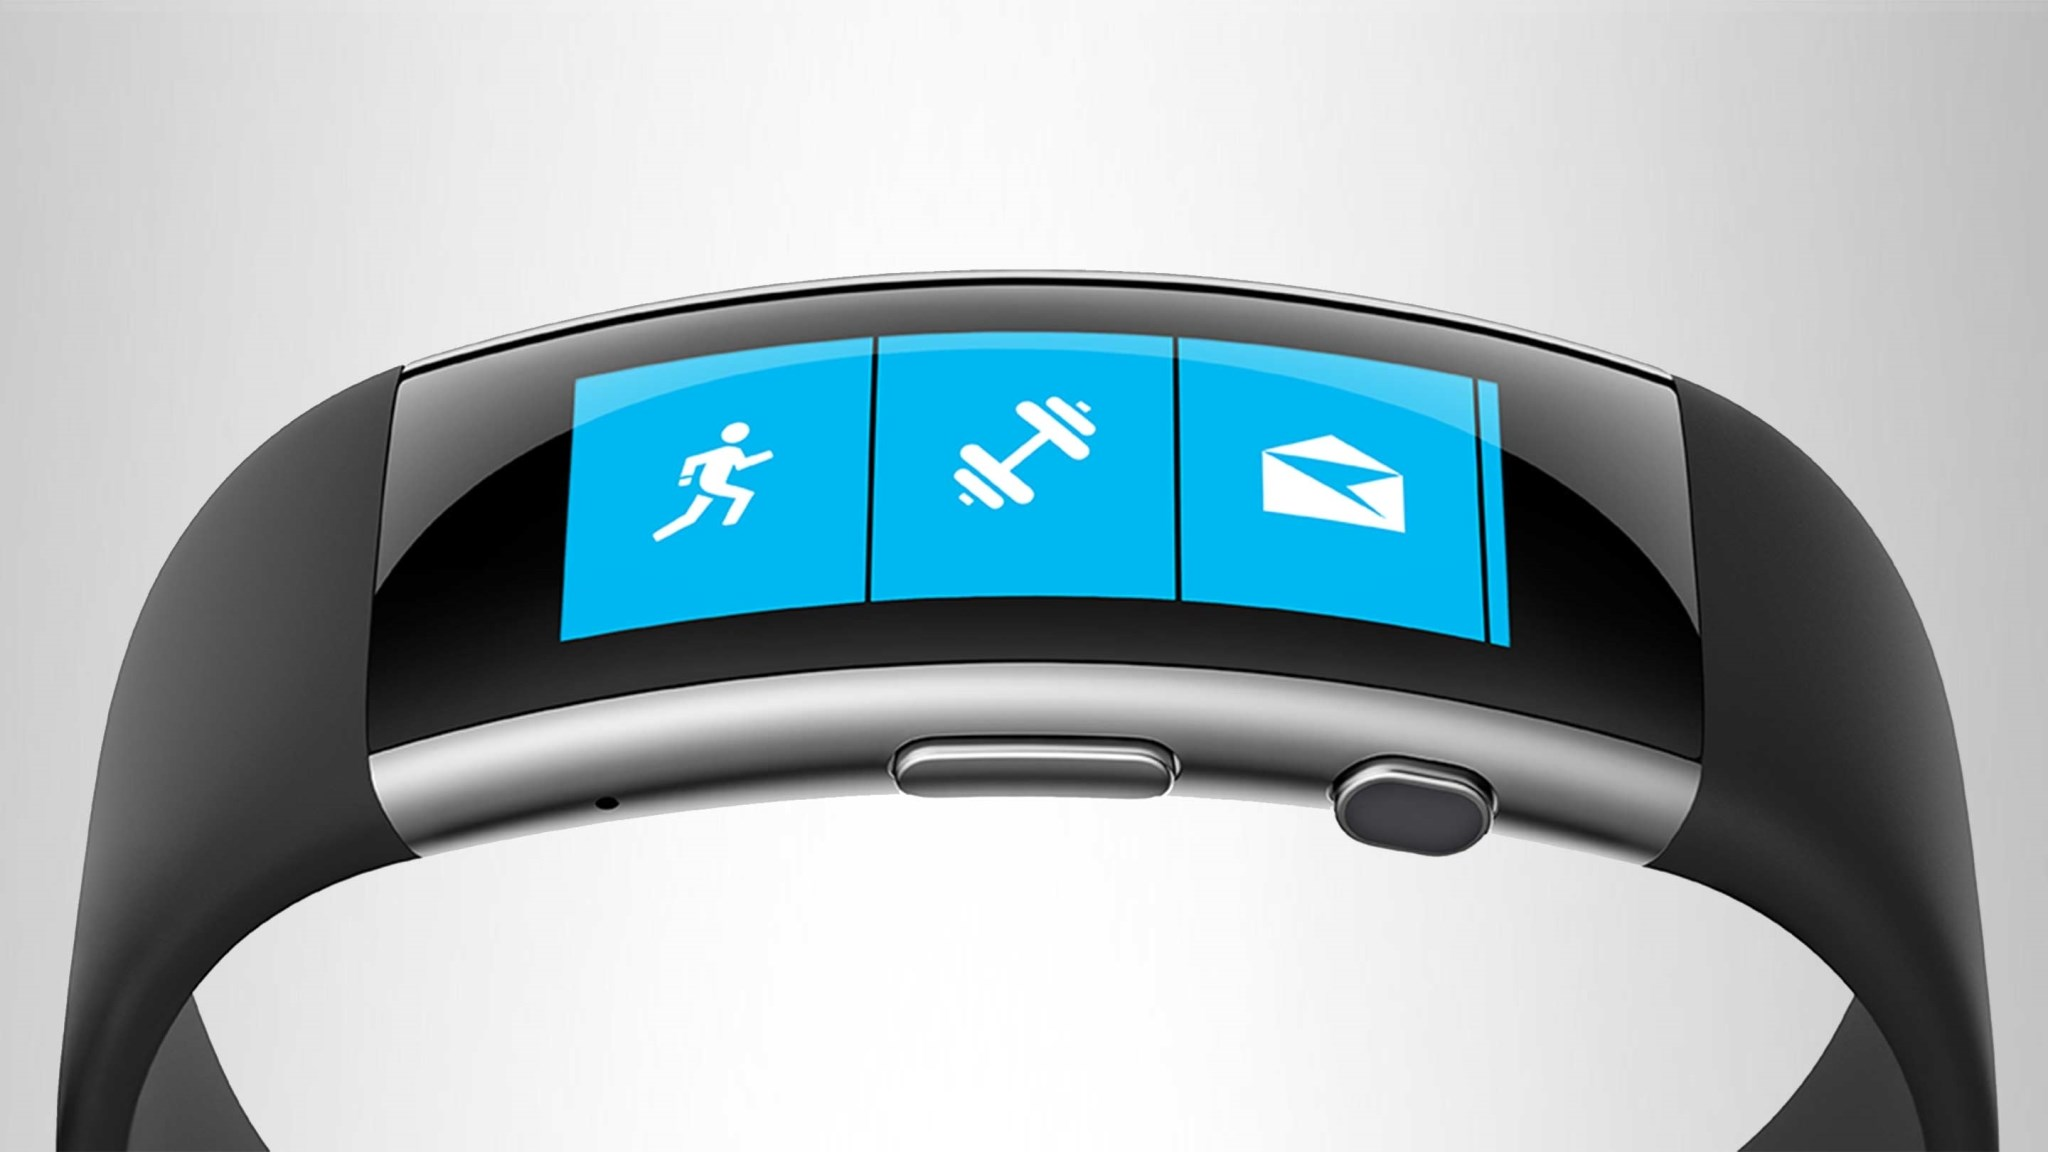 Microsoft debuts new fitness tracker